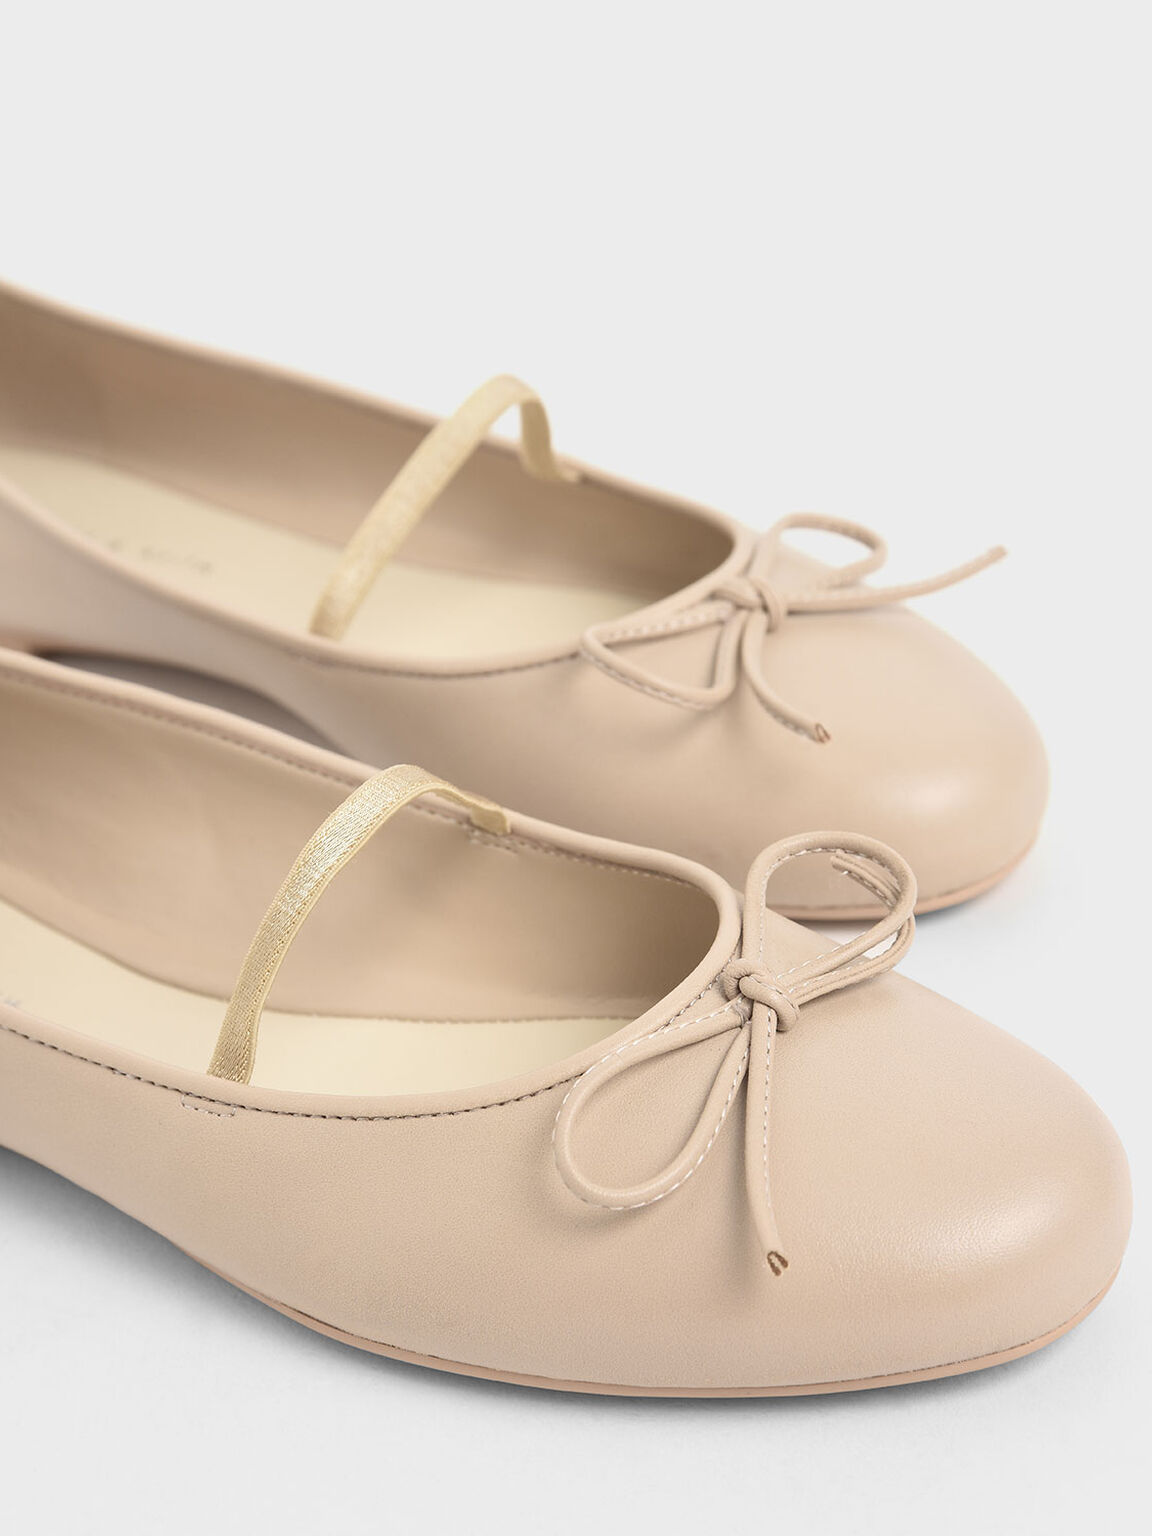 Ribbon Tie Mary Jane Ballerina Flats, Beige, hi-res